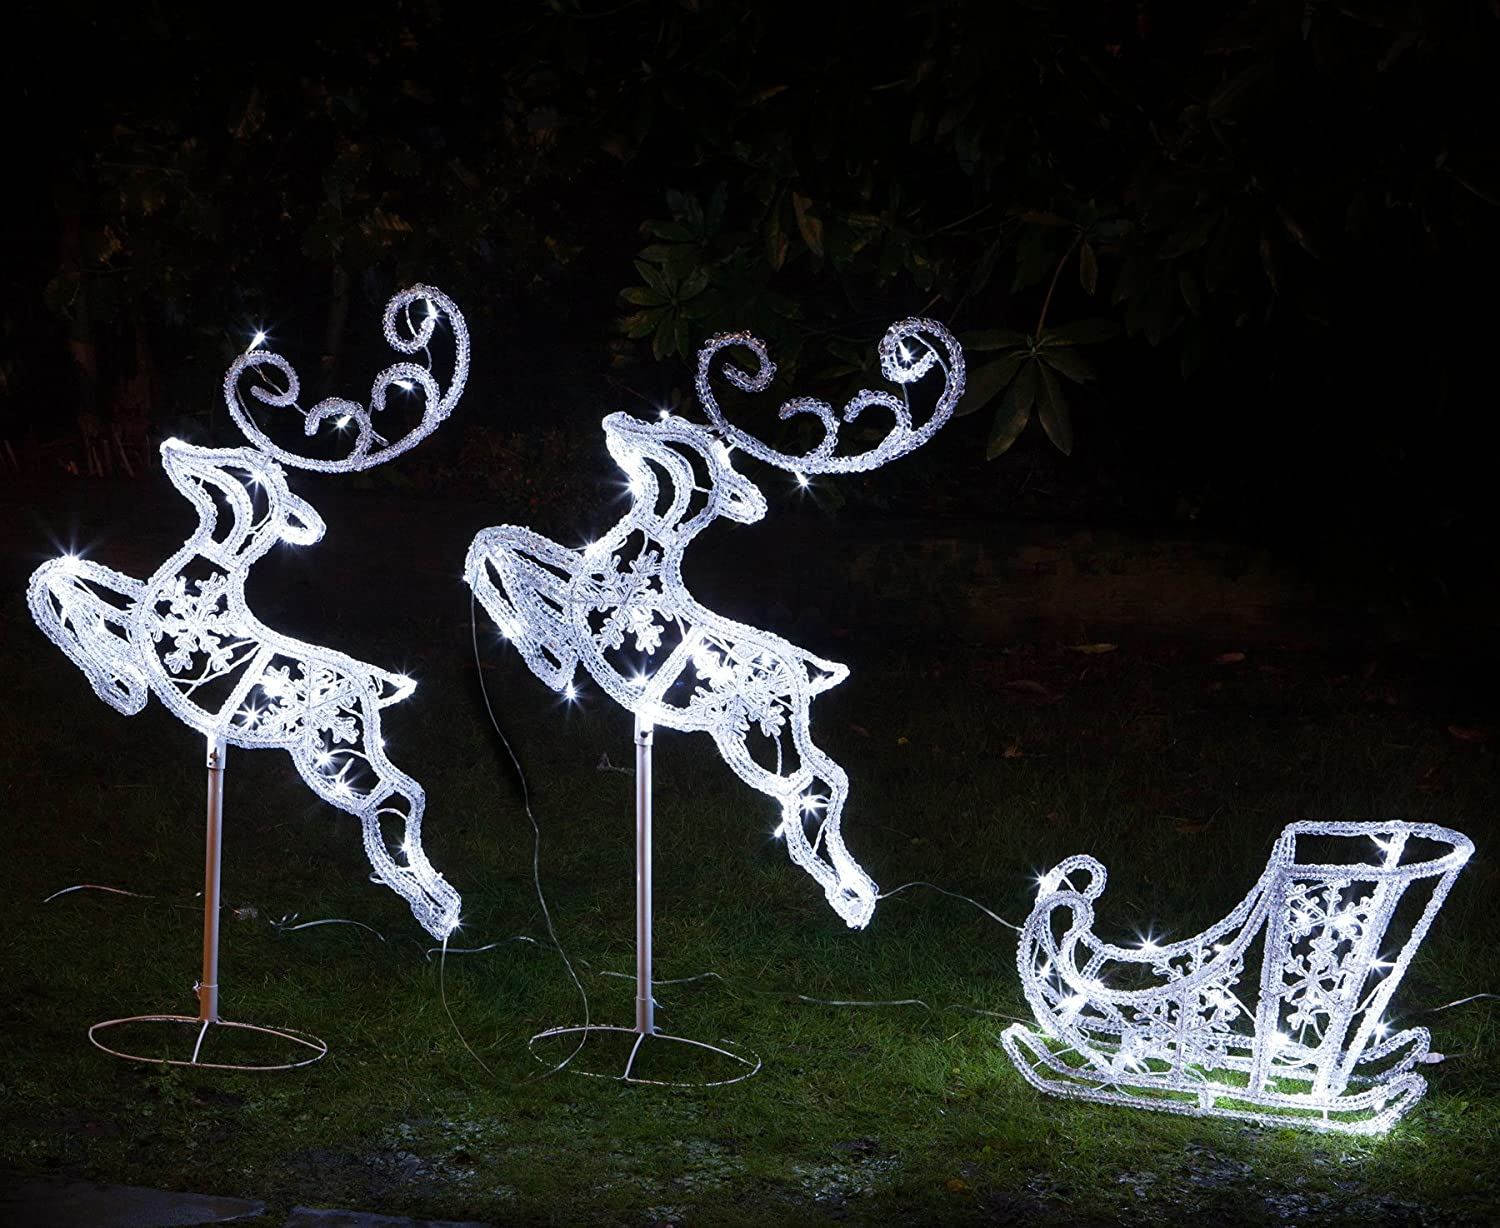 Noma Flying Reindeers & Sleigh : 96cm with 90 LEDs : 2514054 Noma @ WOWOOO